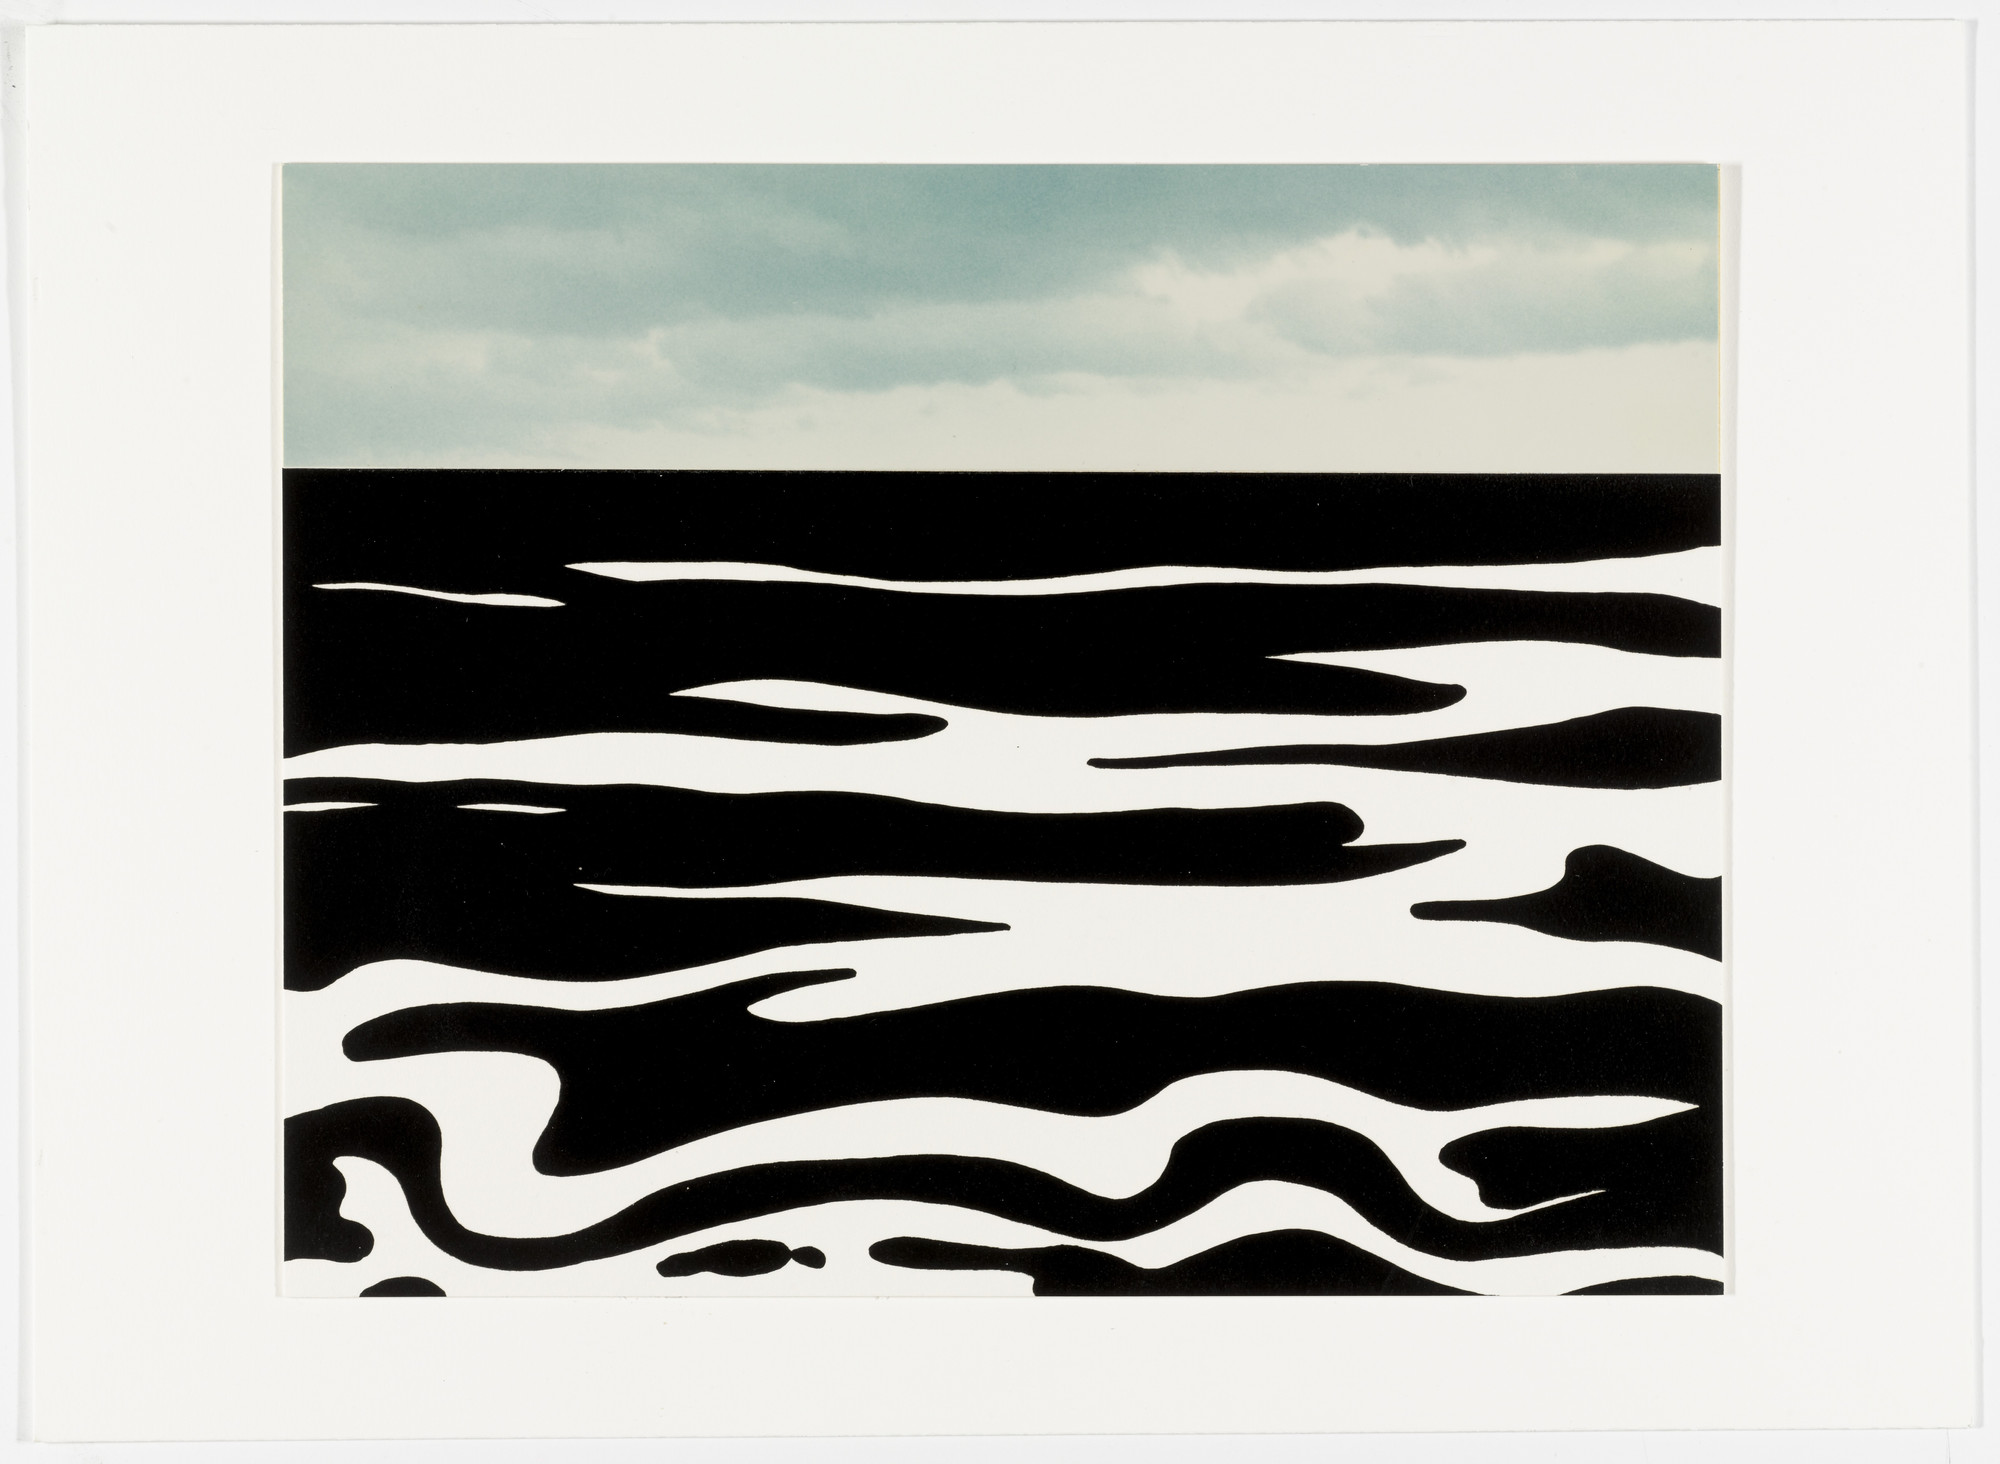 Roy Lichtenstein. Landscape 9 from Ten Landscapes. 1967